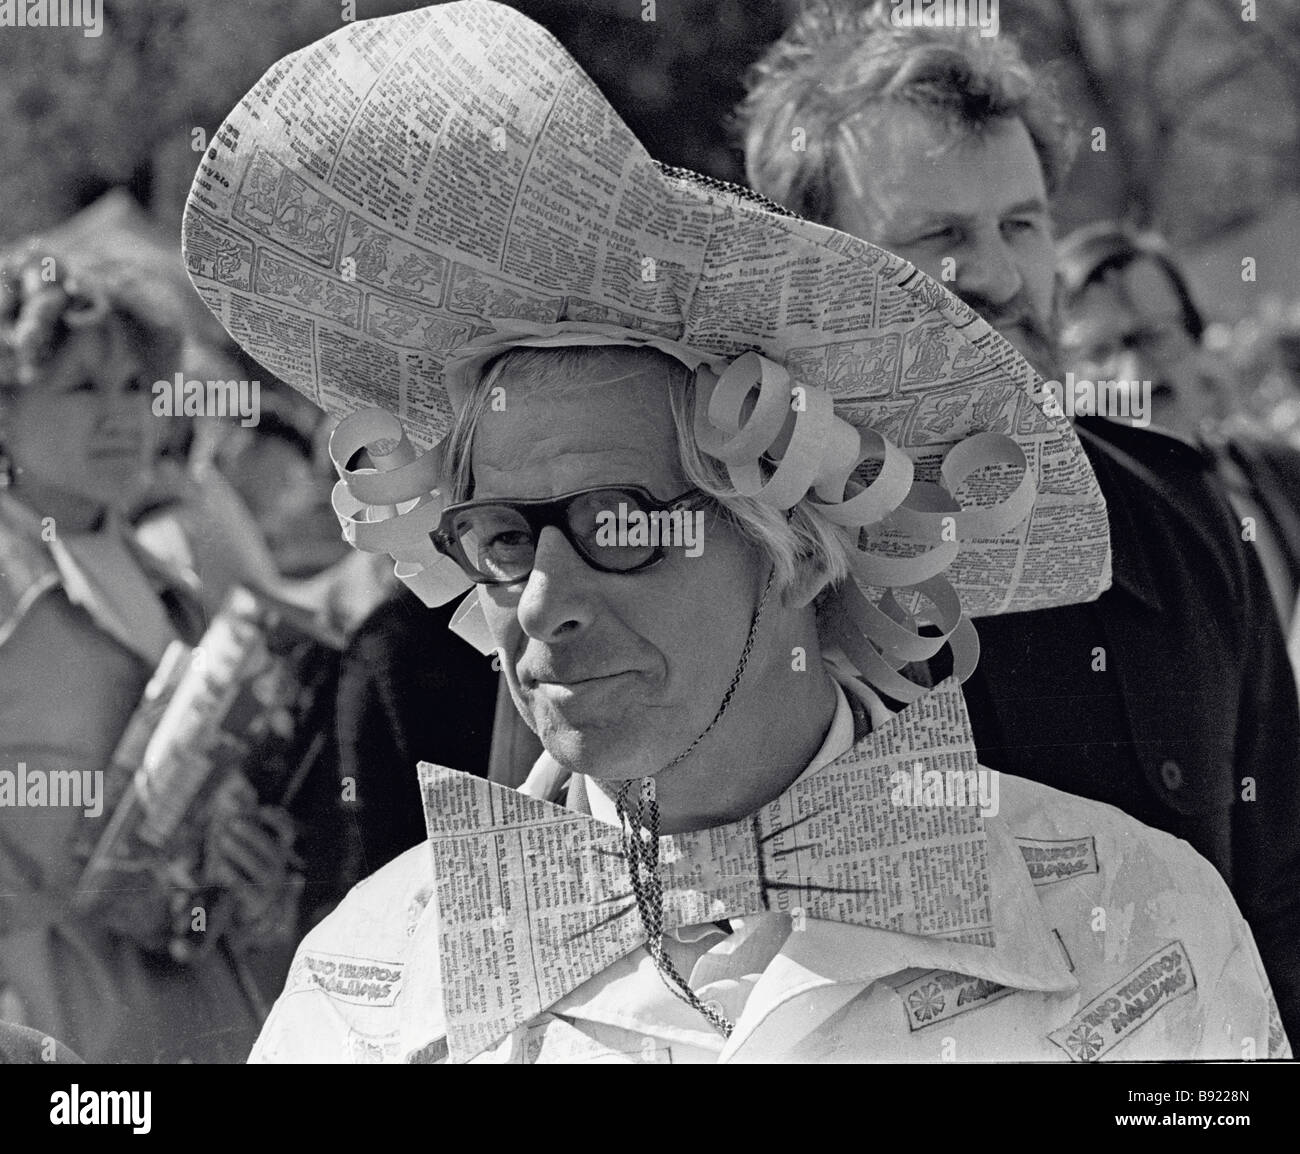 Journalist in a unique hat made of newspaper during Press Day - Stock Image